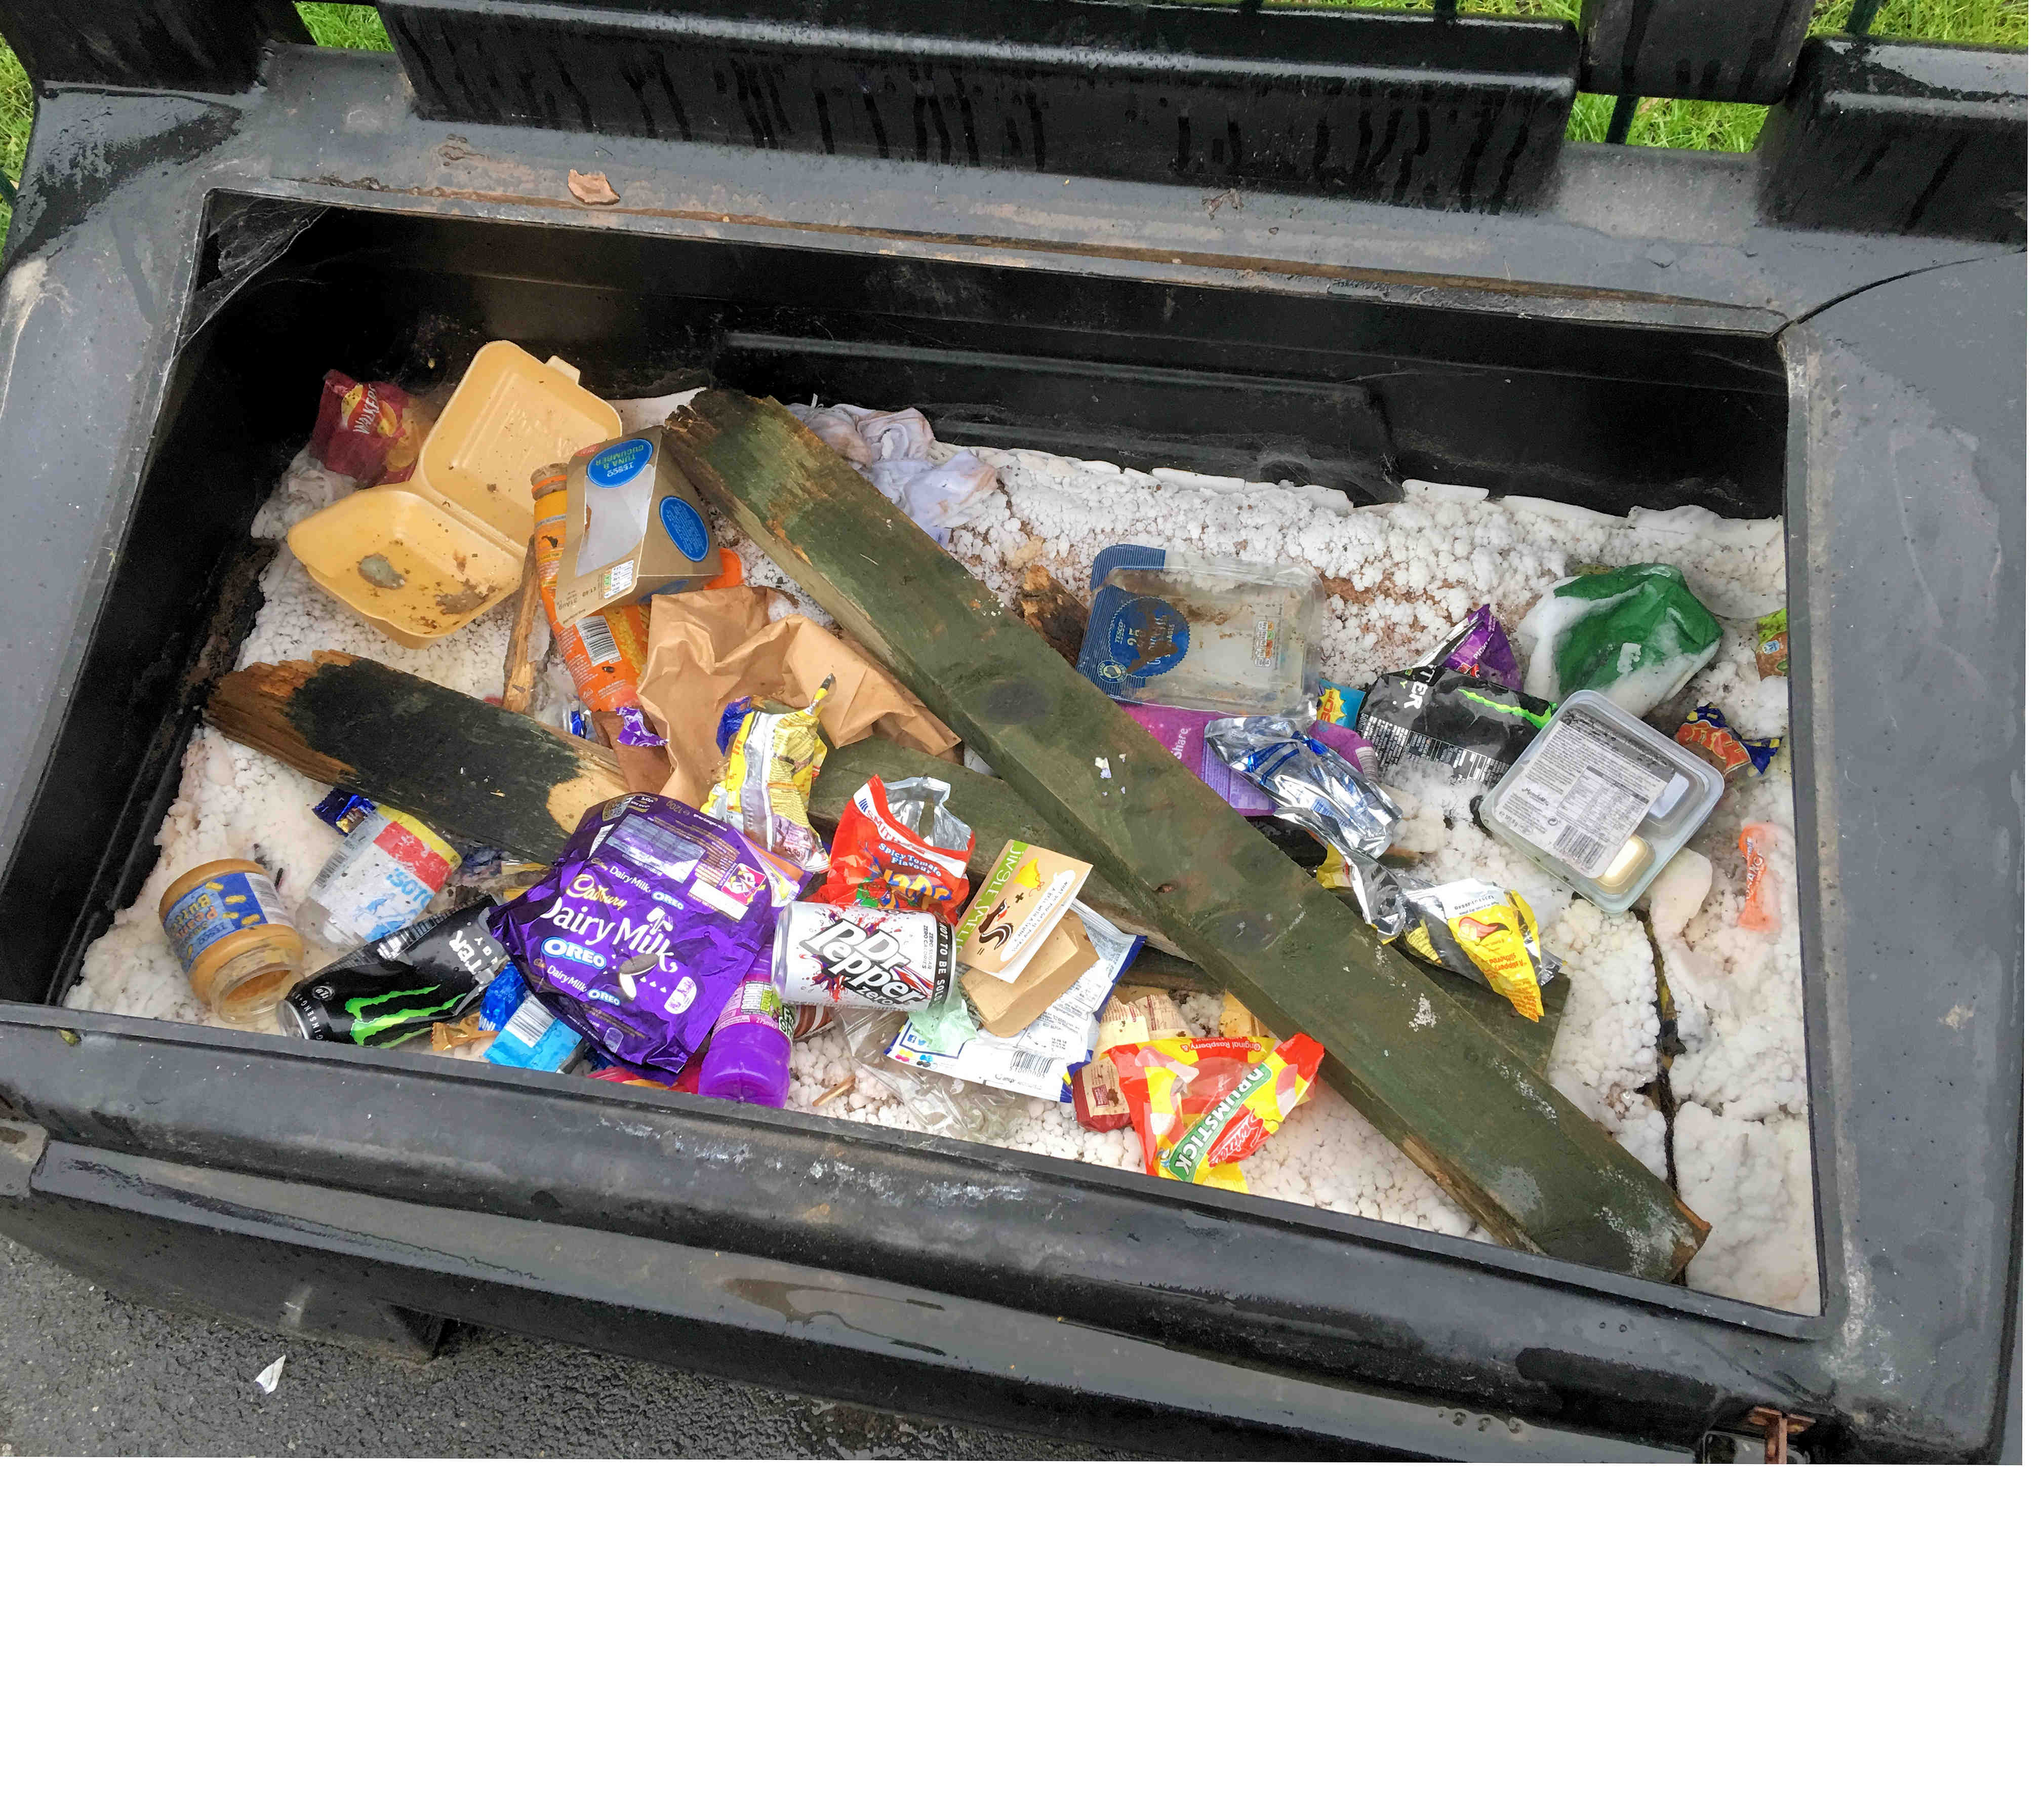 Although we are experiencing mild weather there is likely to be an icy spell sooner or later. Residents are asked to check that salt bins are full (and not filled with litter!)